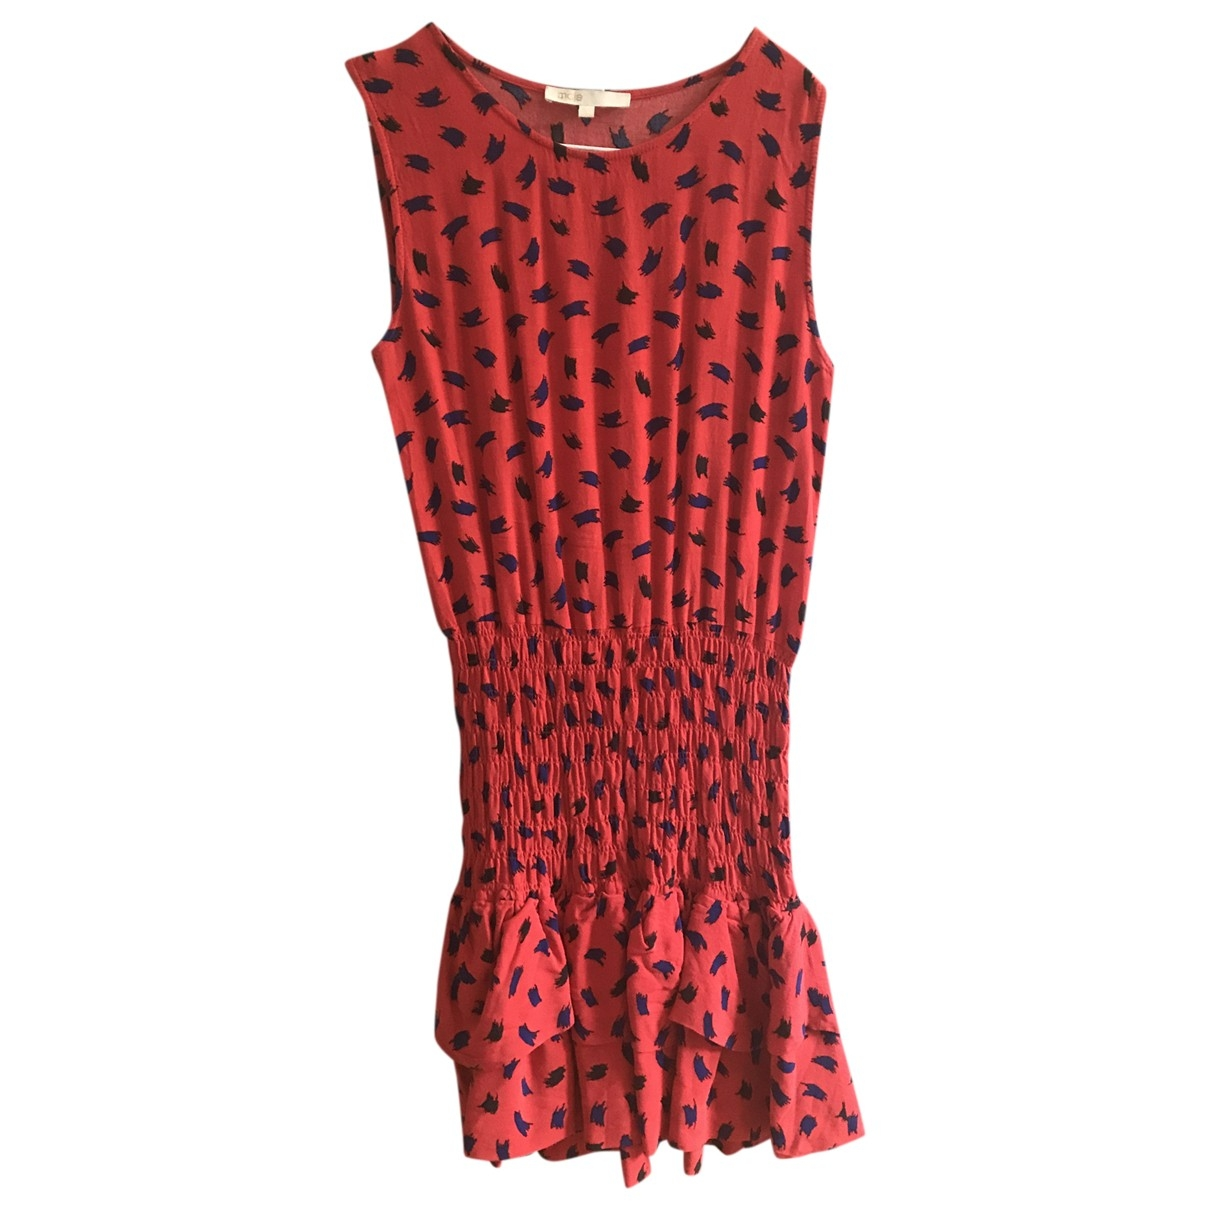 Maje \N Red dress for Women 34 FR